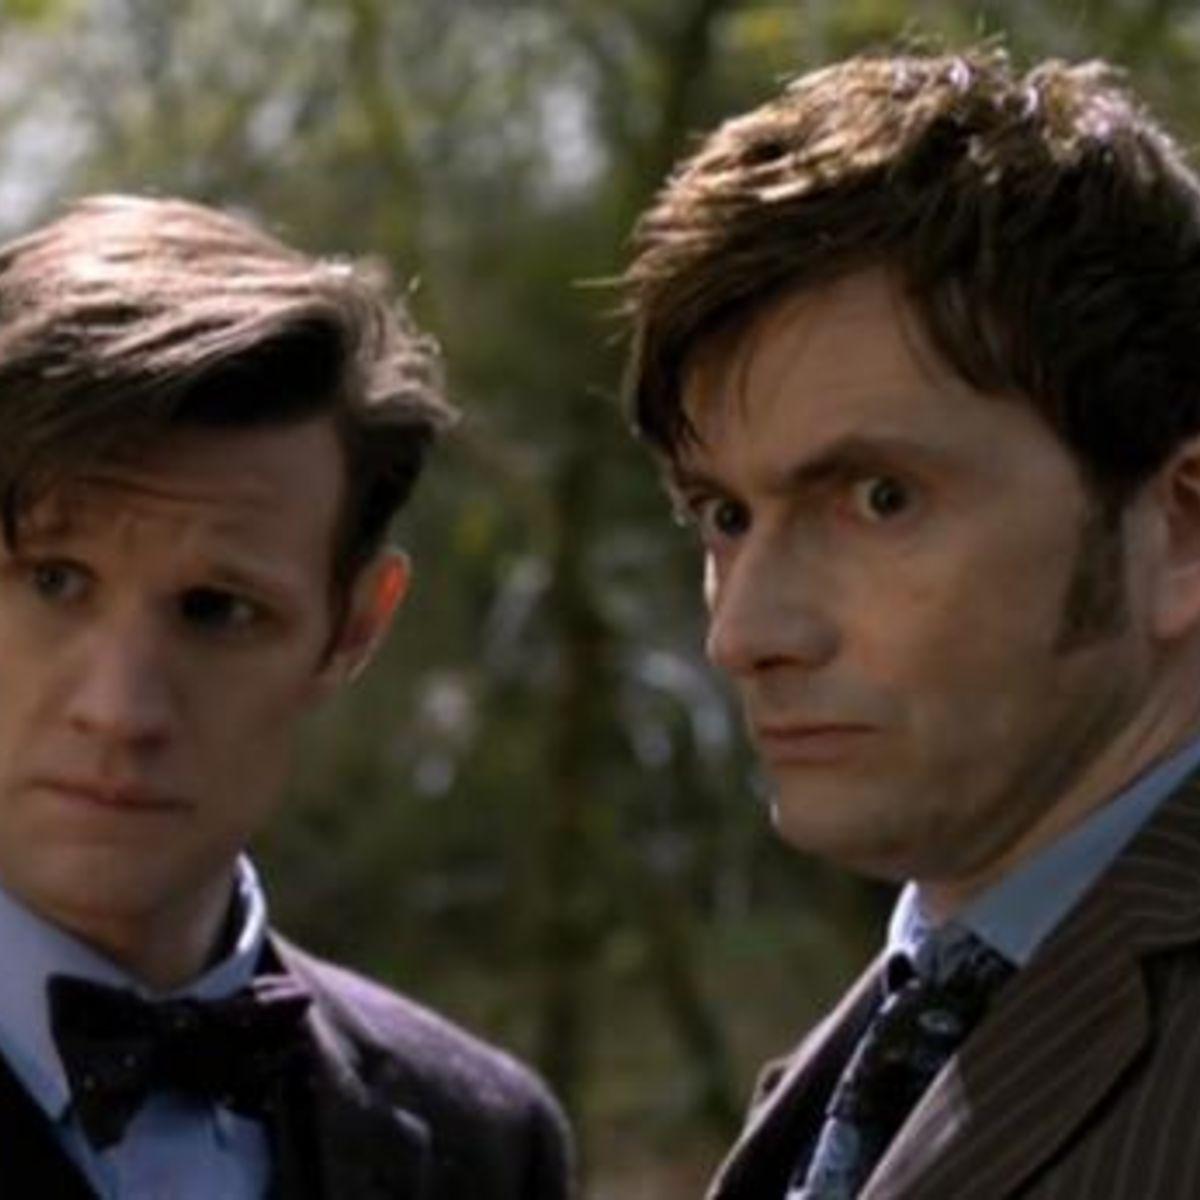 dayofthedoctor.jpg.CROP.rectangle-large.jpg